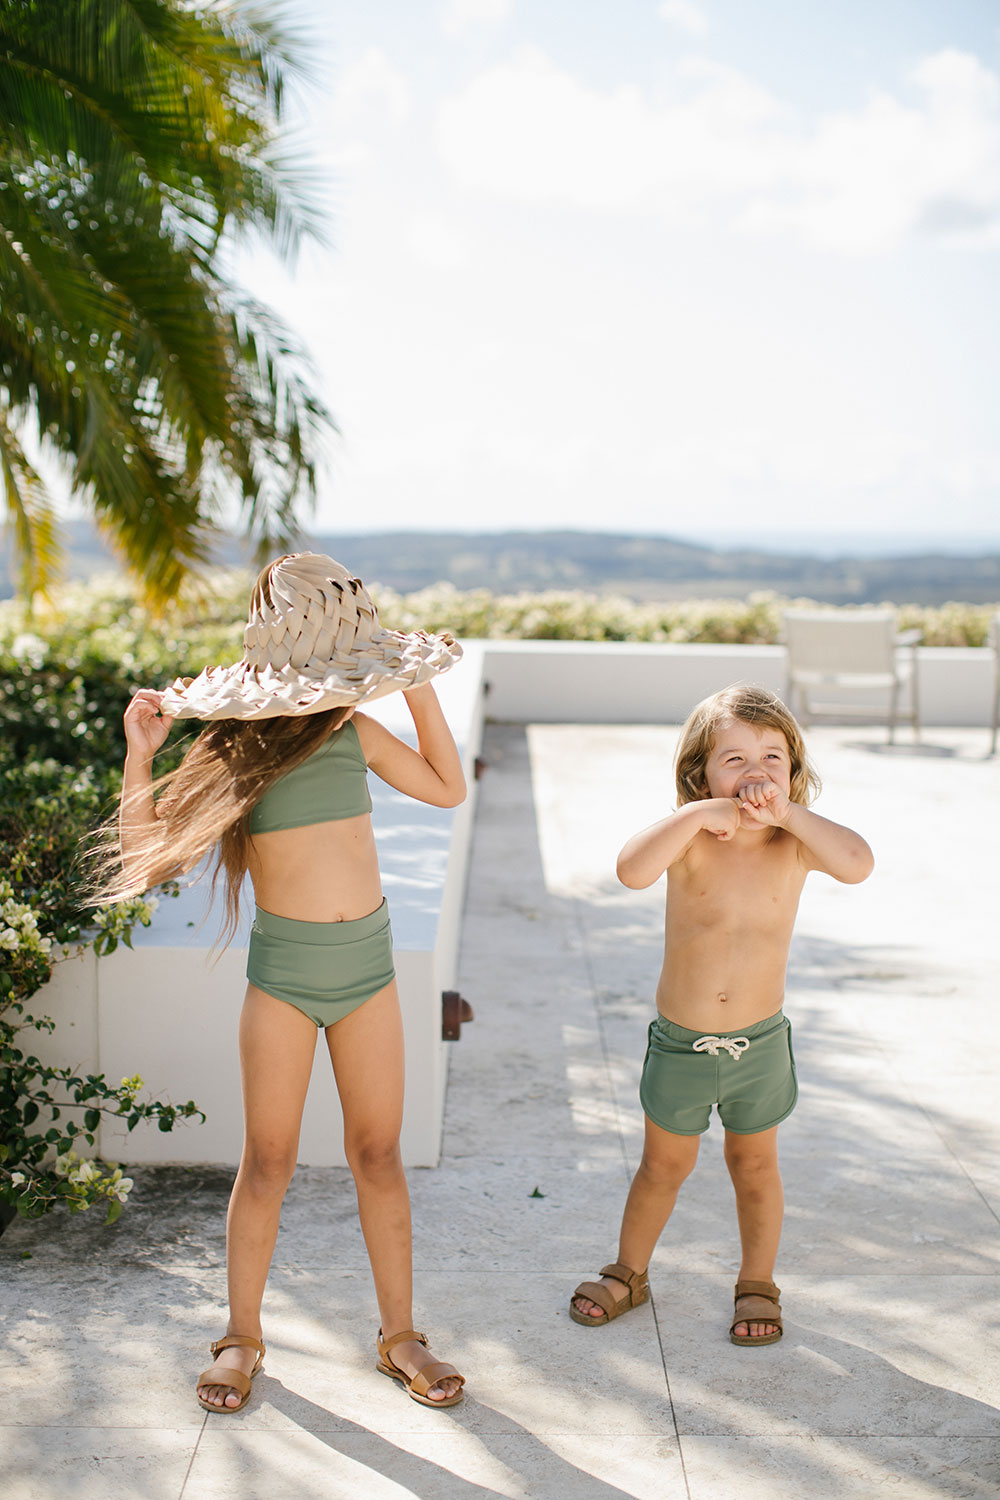 Ina Swim | Arla Bikini + Mesa Trunks